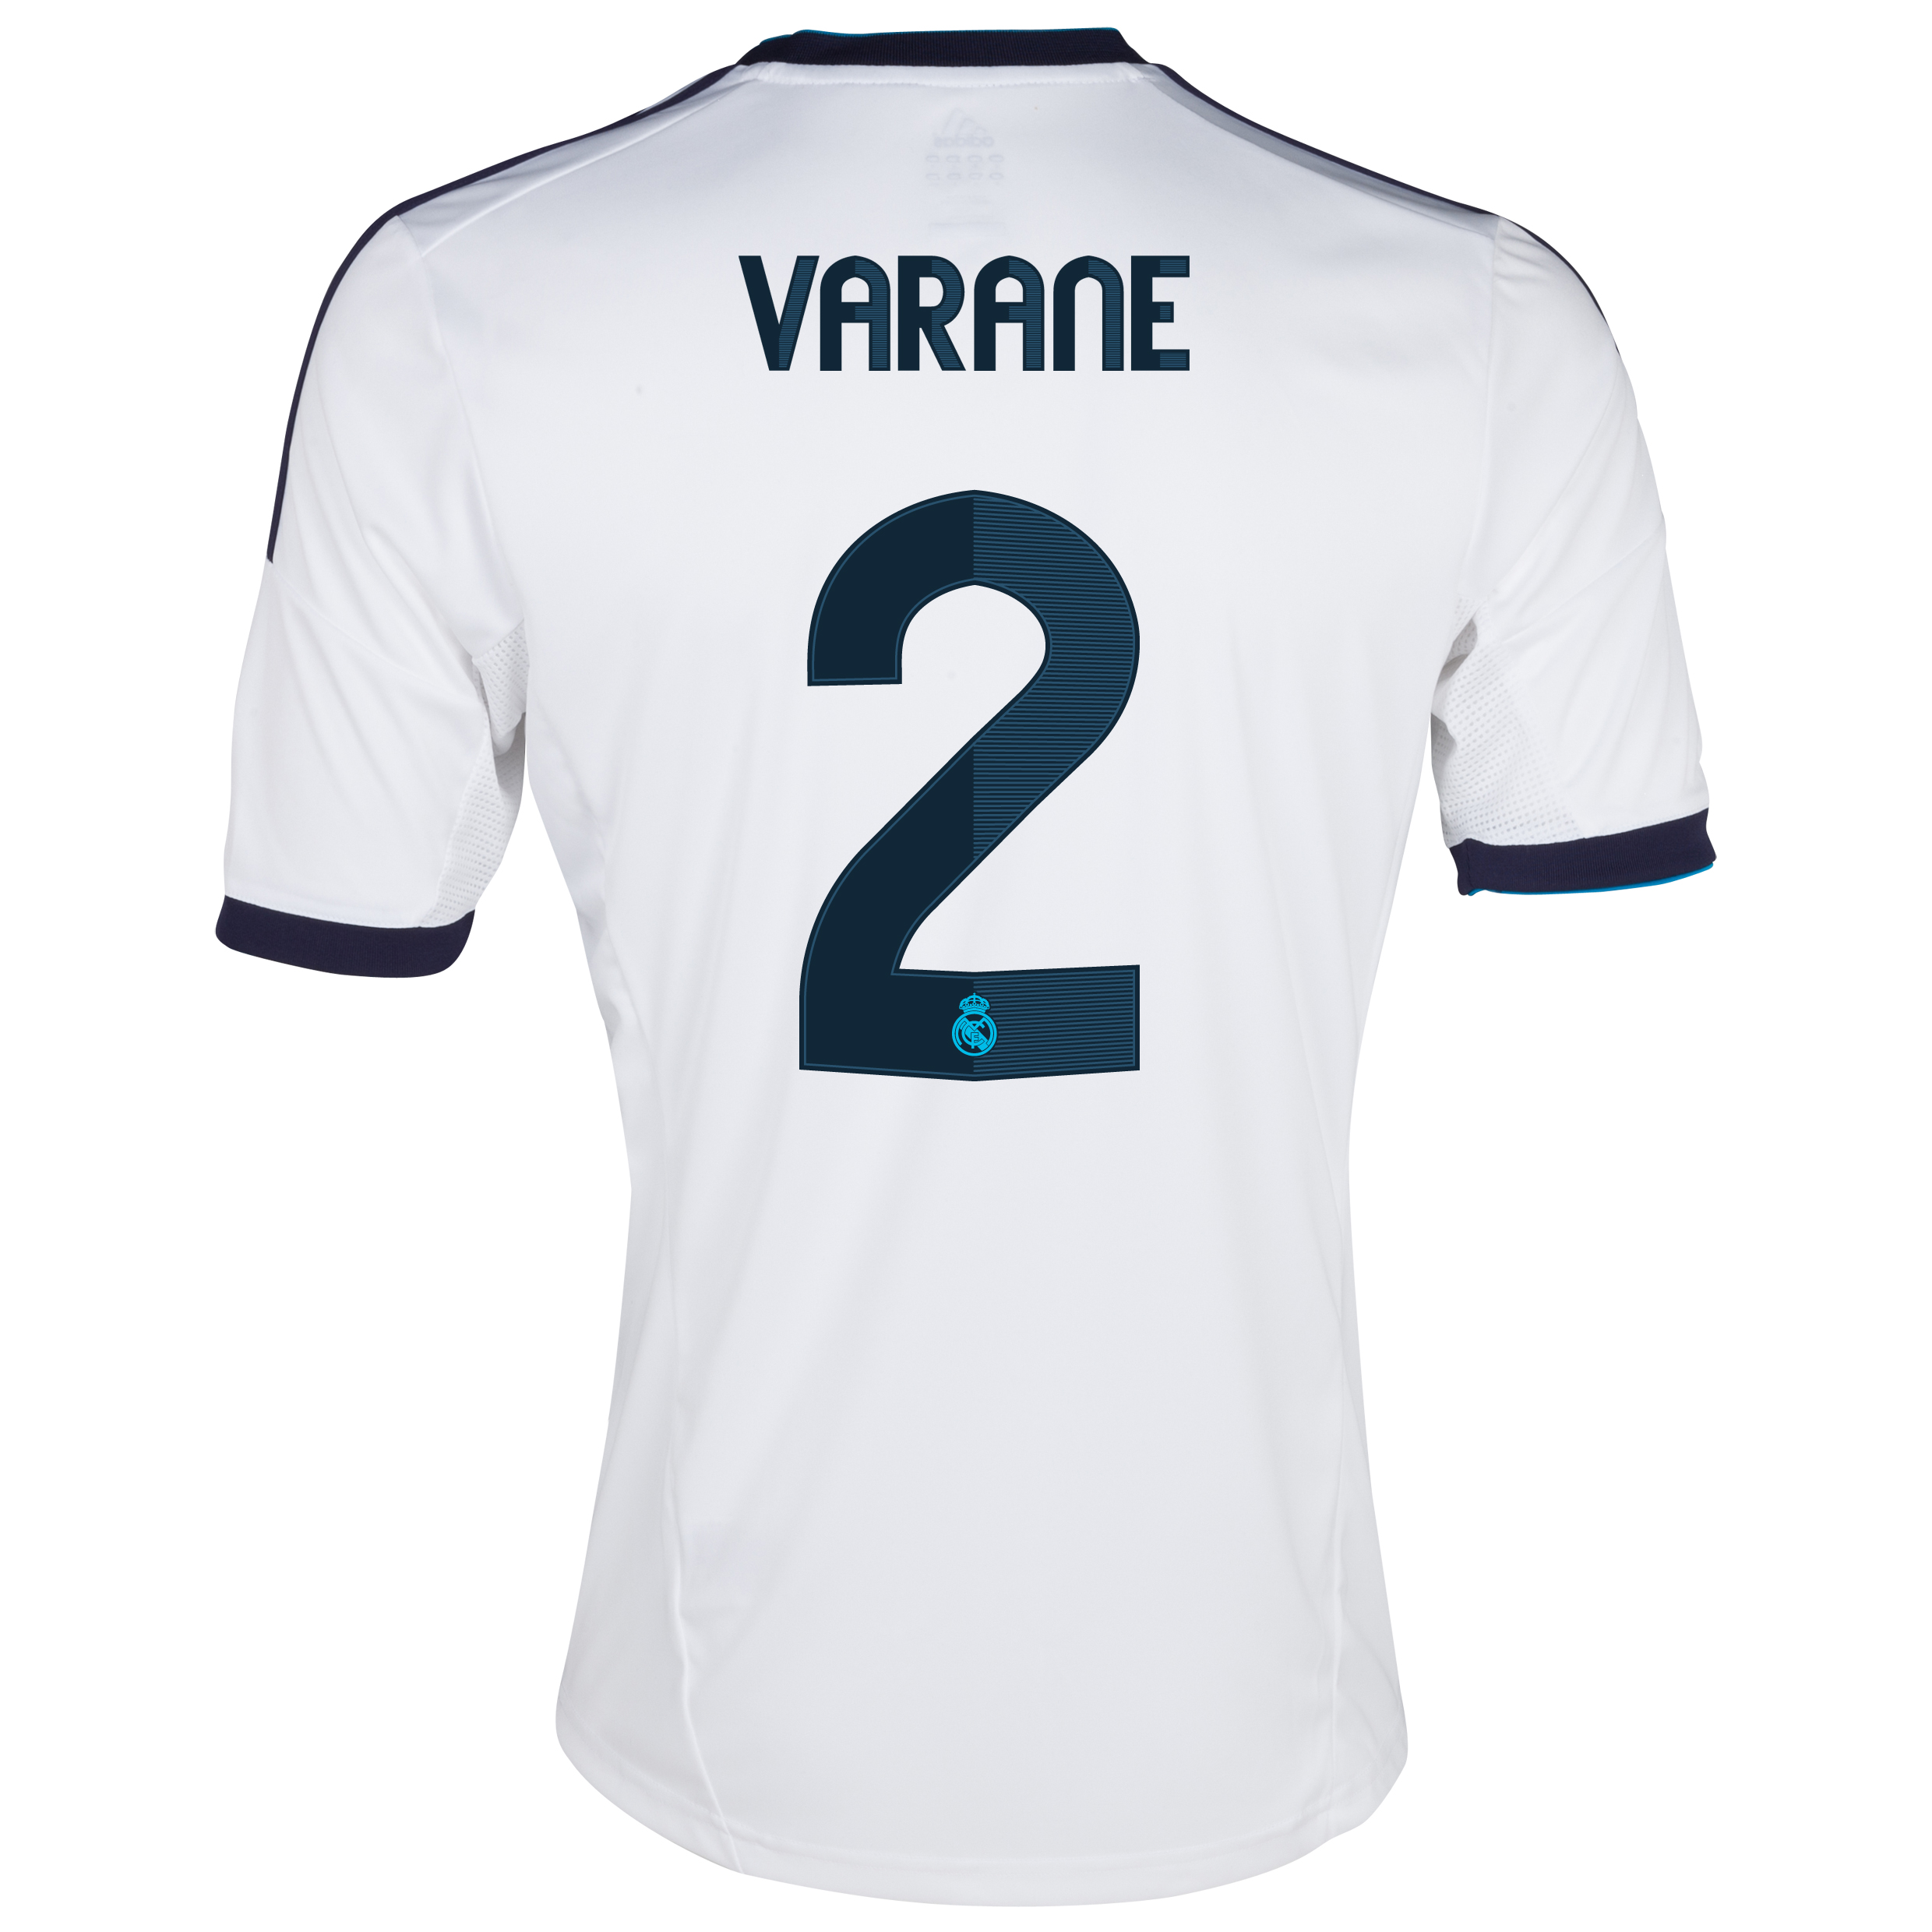 Camiseta 1 equipacin del Real Madrid 2012/13 Cadete con Varane 19